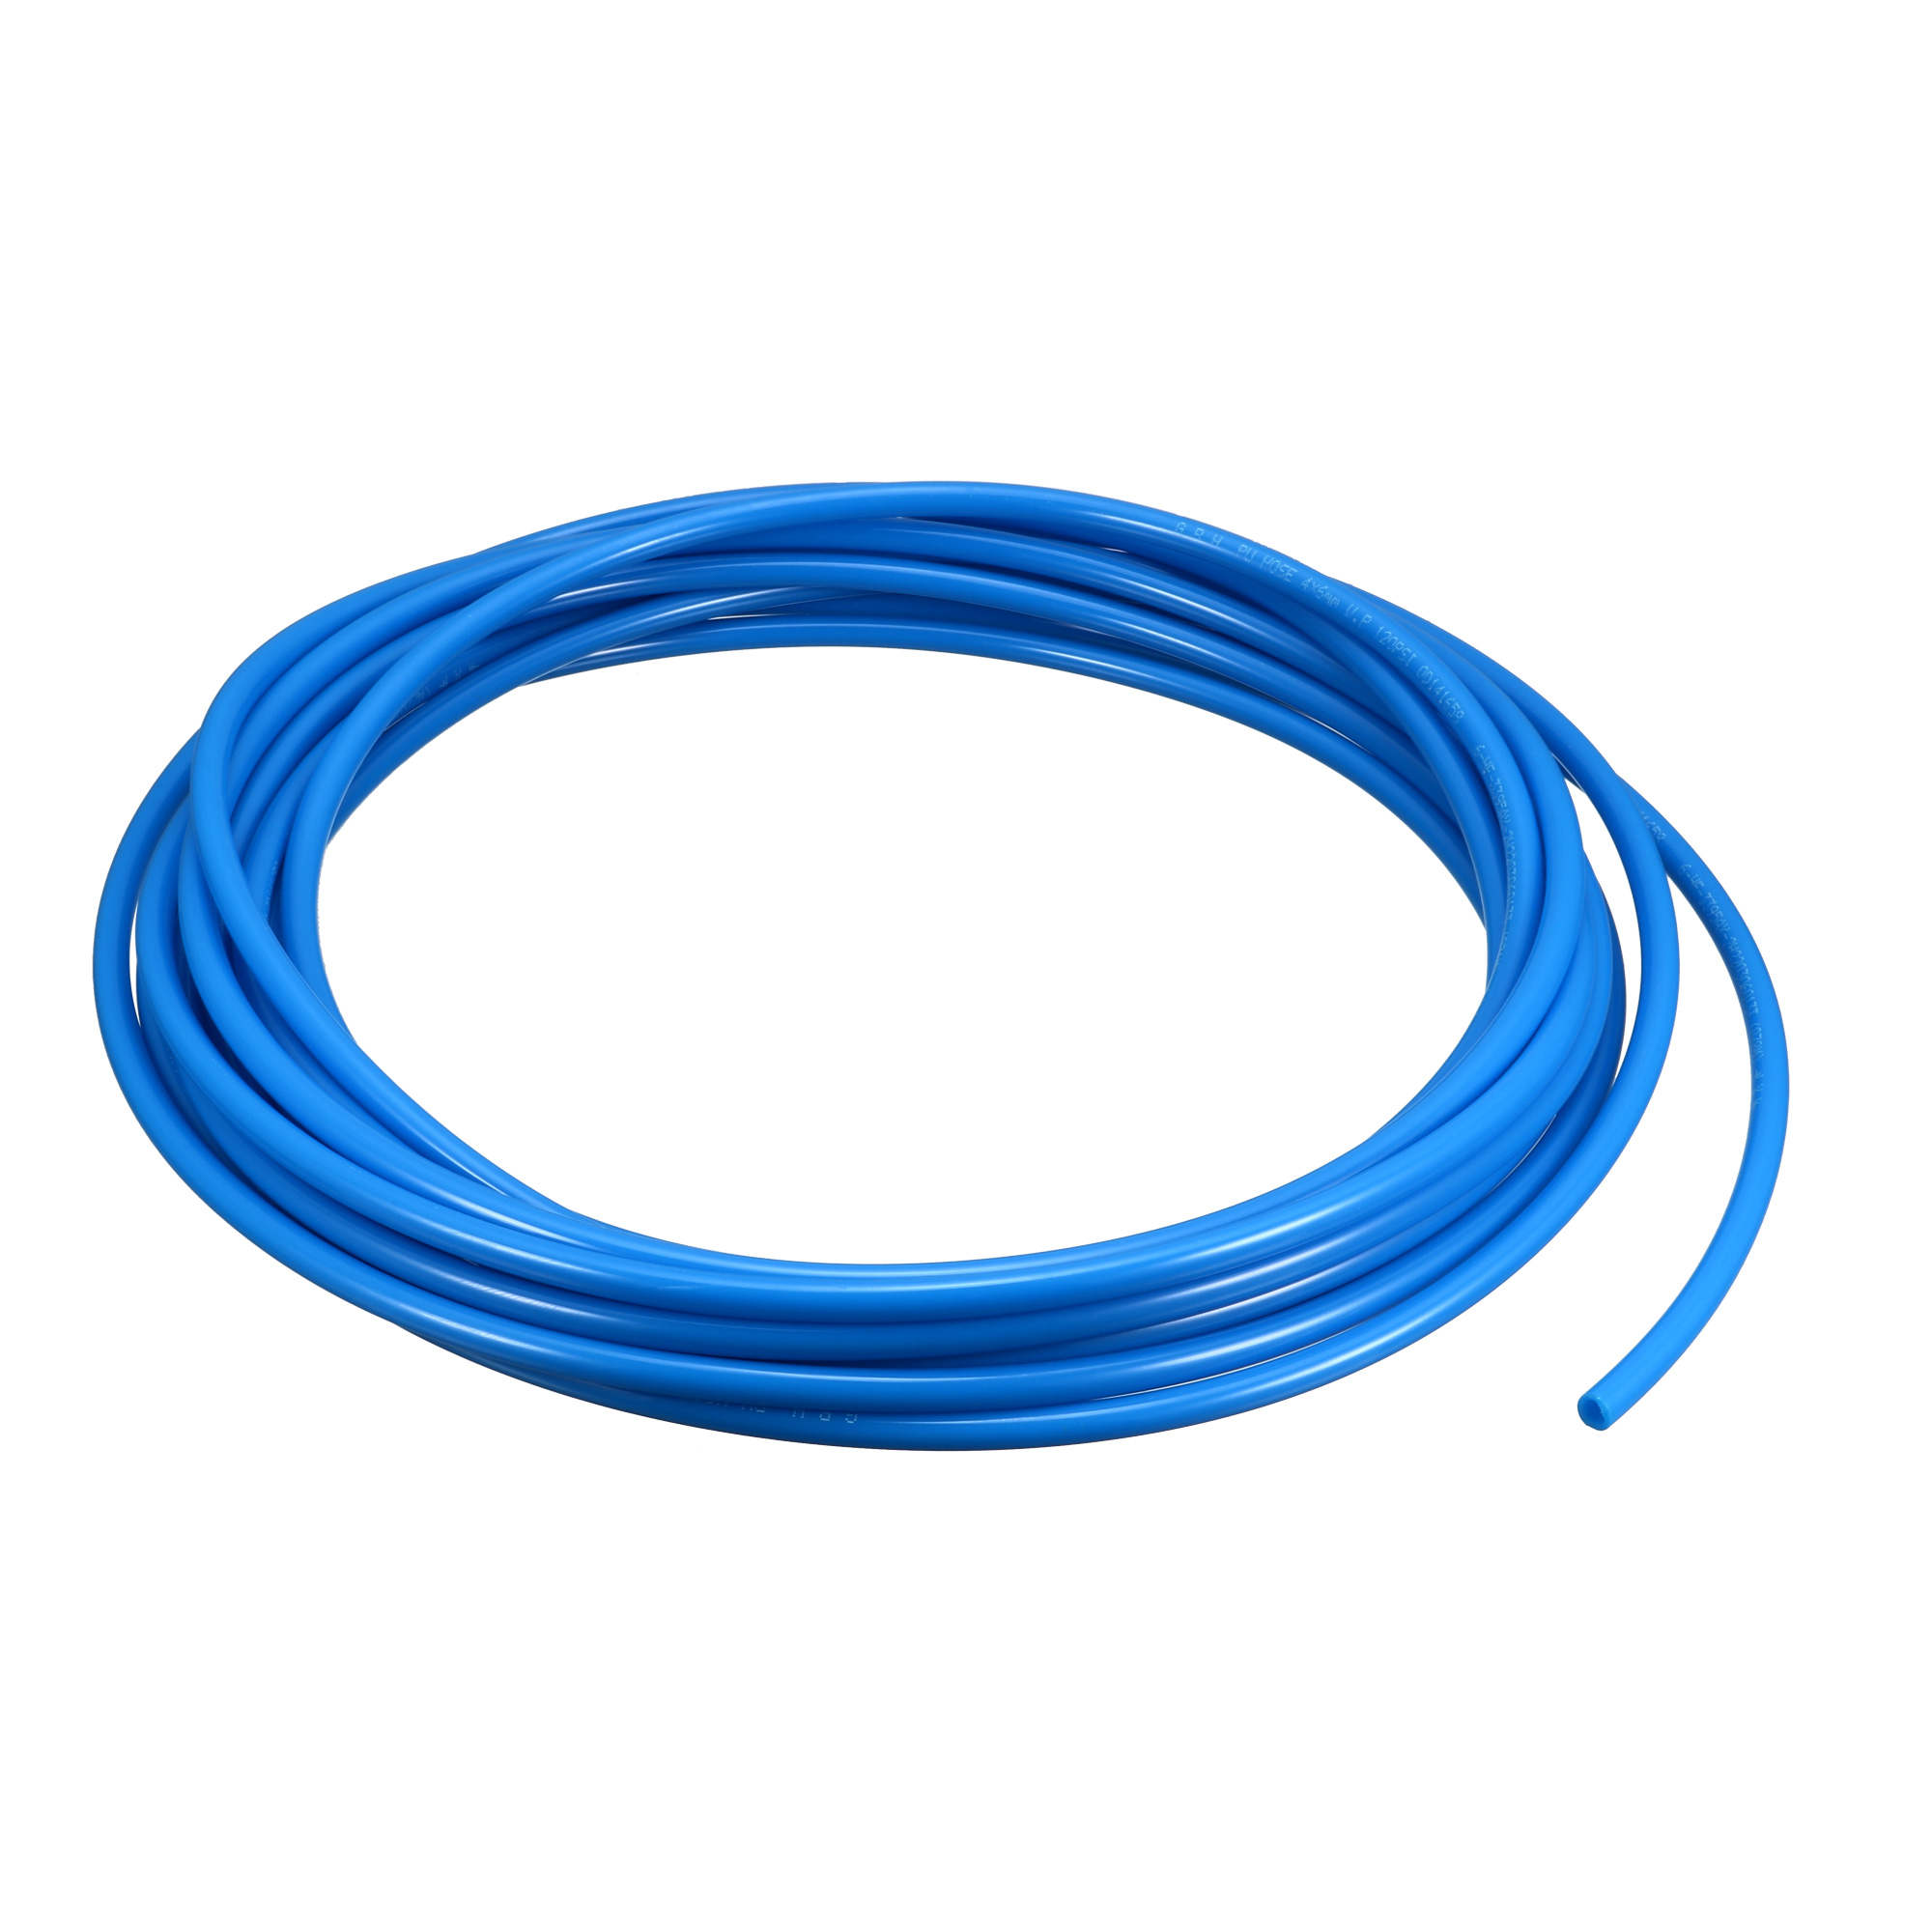 Pneumatic 4x6mm Fuel Gas Quick Fittings Connection PU Line Tube 7.5M Blue